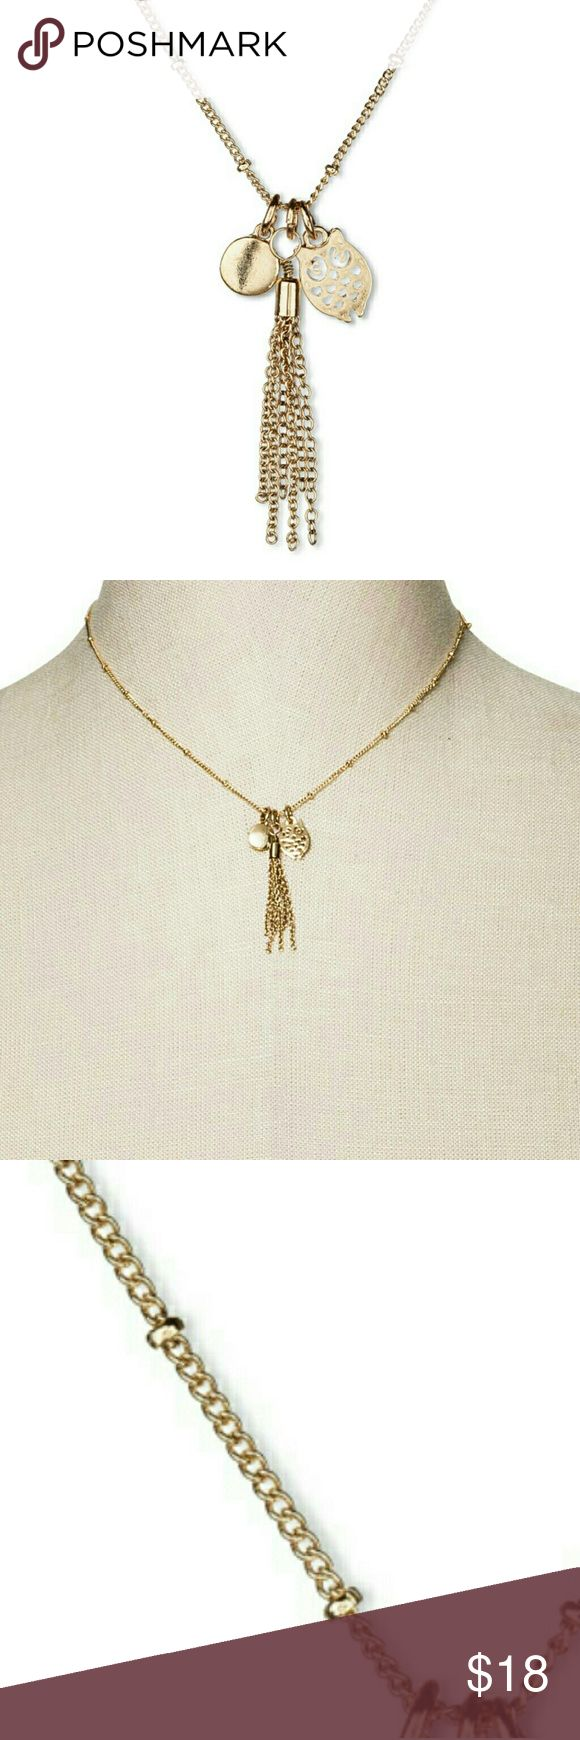 """NWT Wisdom Gold Owl Tassle Necklace _Gold Trinket Owl Necklace. Add a Dash of Whimsy to Your Favorite Looks with this Women's Wisdom Necklace.  _Highlights: Shiny Antique Gold-Tone Finish 16"""" Long Chain with Tiny Gold Spaced Pieces, Sweet Owl, Tassel & Gold Round Charms. Secure Lobster Clasp Closure &   _No Discoloration_No Tears_No Stains_ _OFFERS WELCOME_TRADE ALSO _DOG FRIENDLY_SMOKE FREE HOME Jewelry Necklaces"""